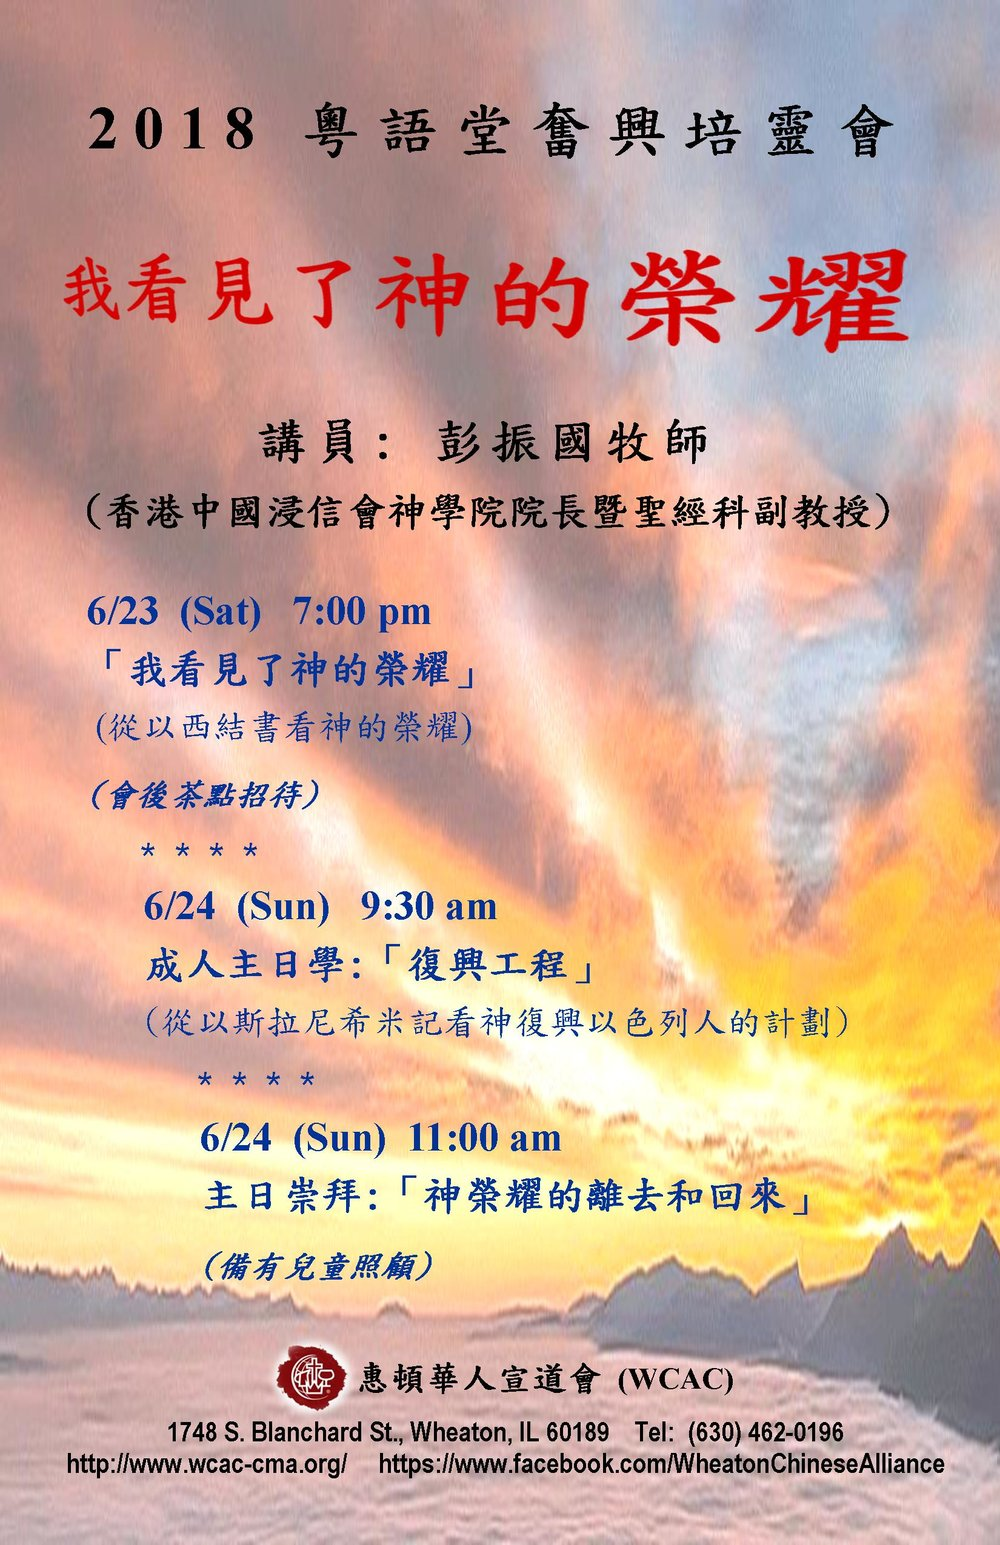 2018 Combined CNY Flyer (color).jpg